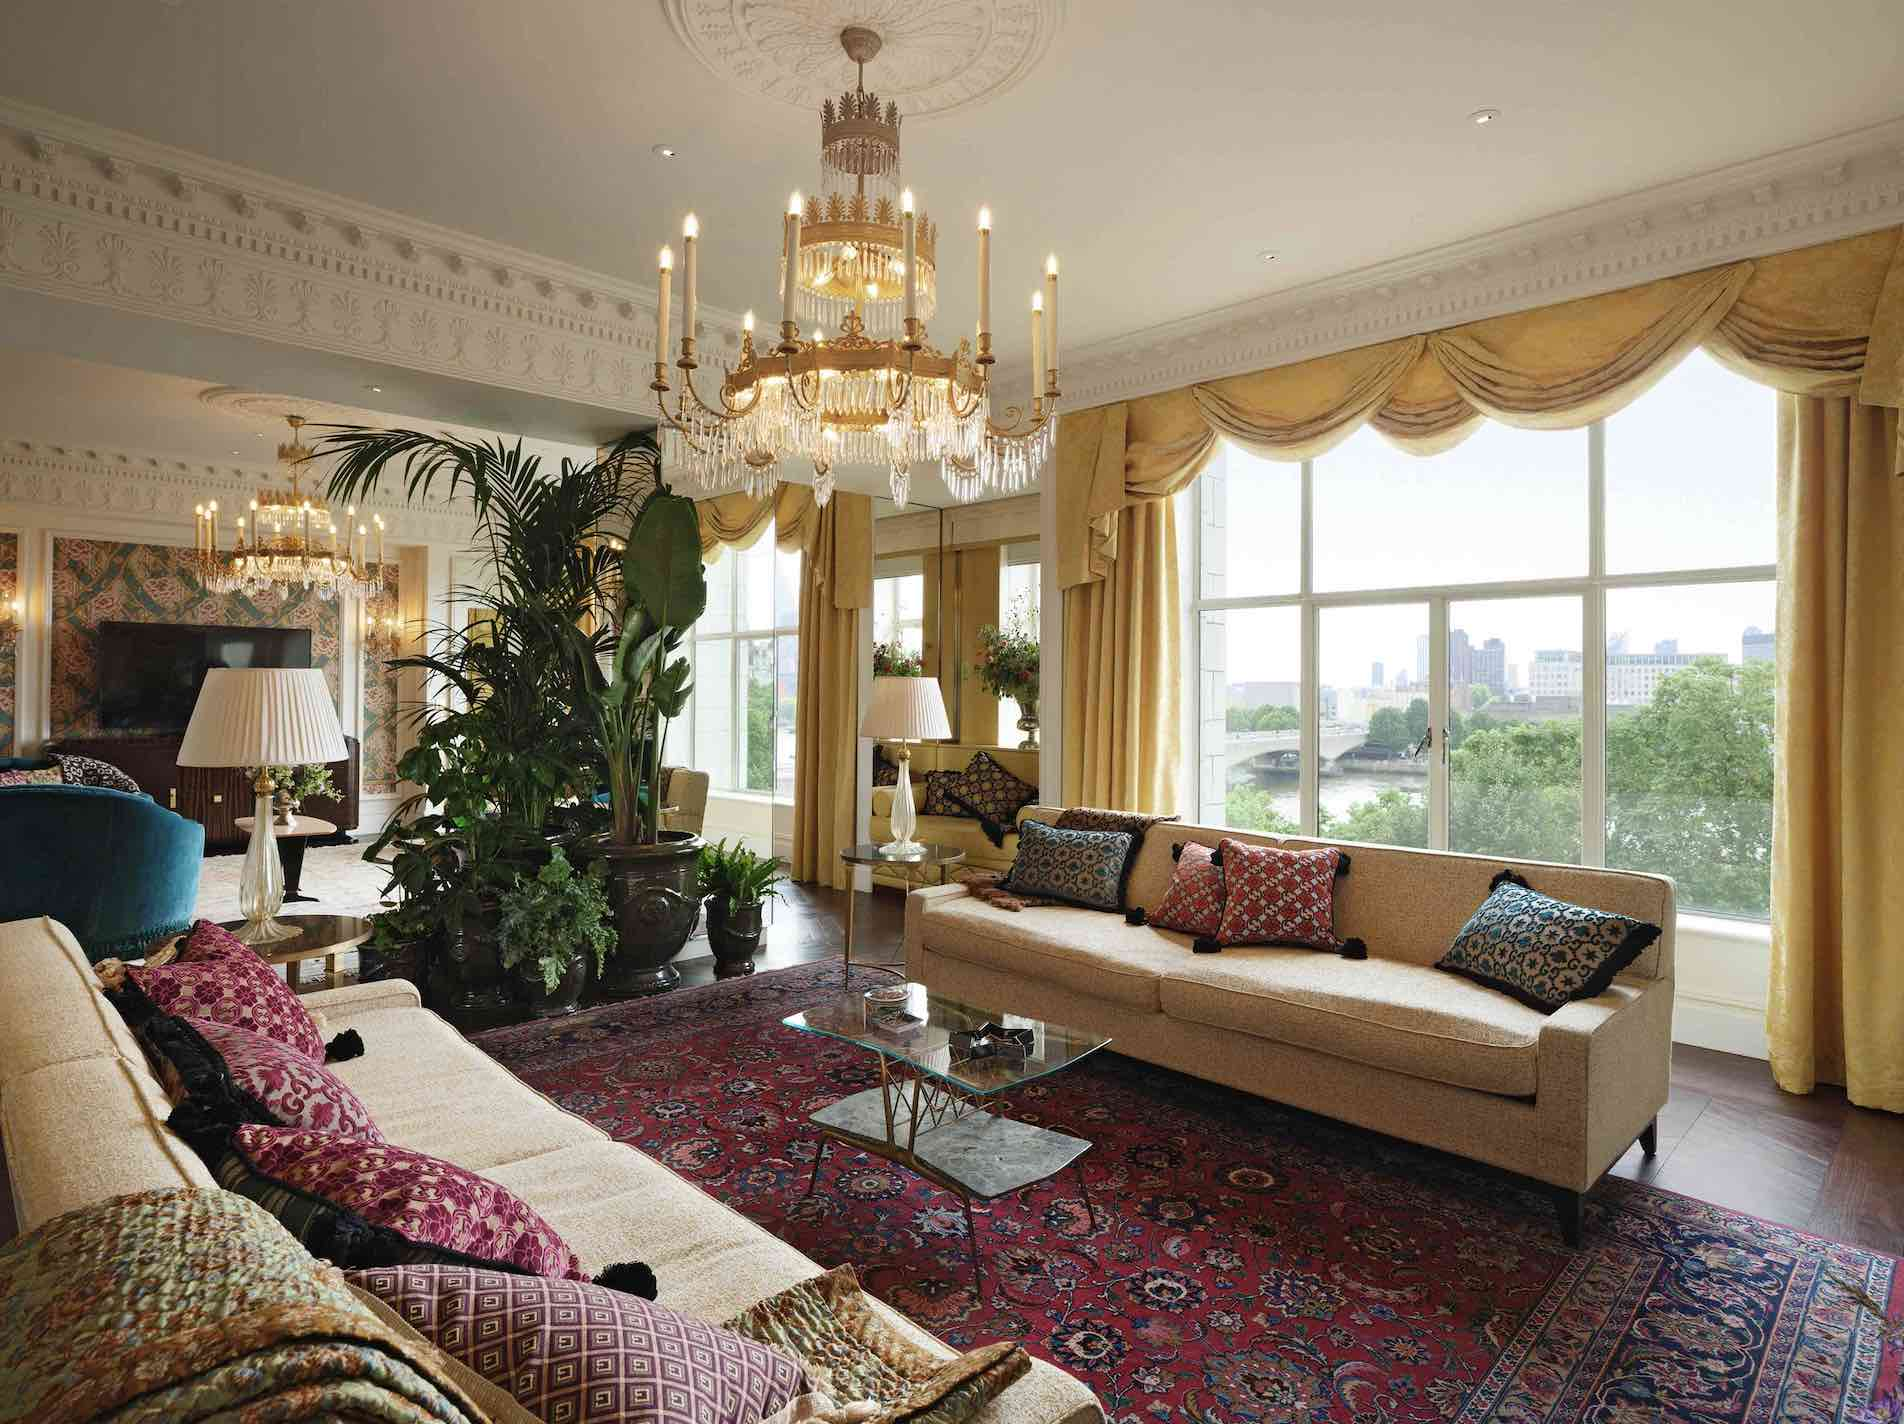 london-savoy-Royal Suite of luxury hotels in central London with view over Thames